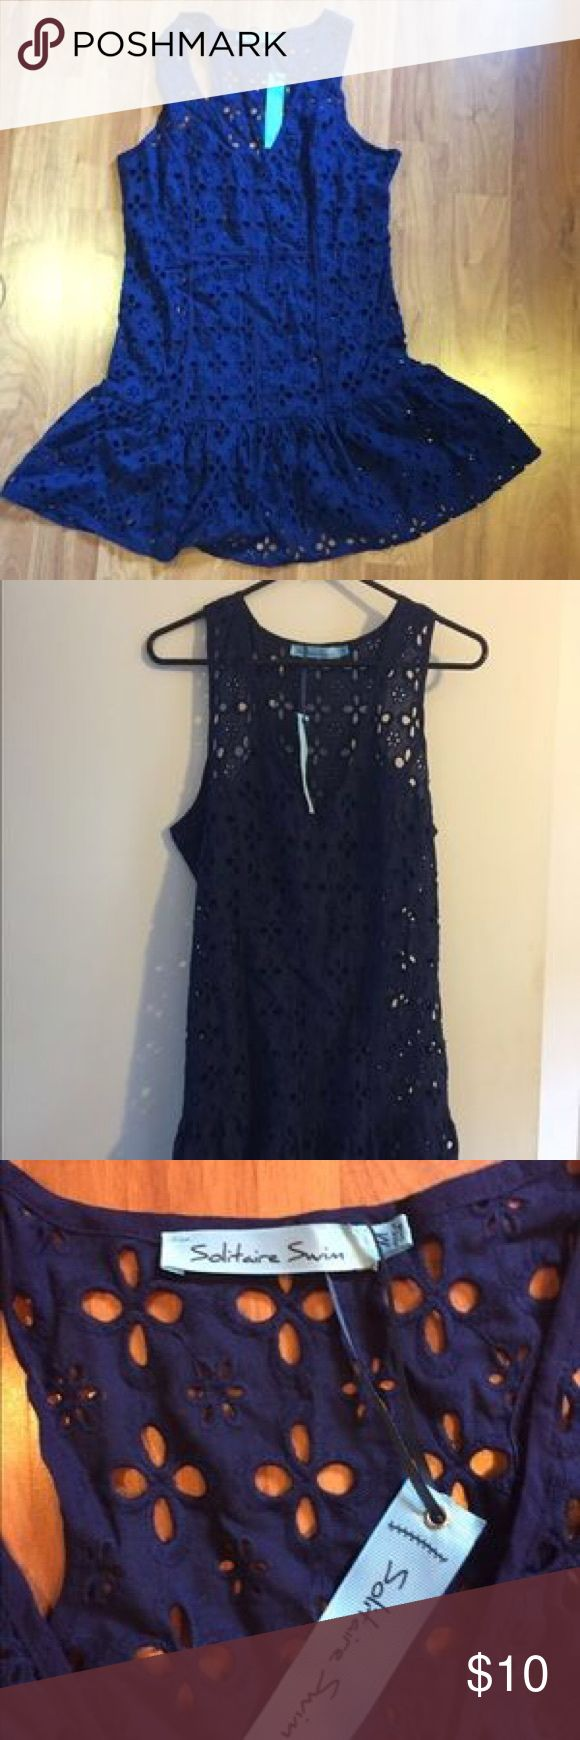 Navy sundress/swimsuit cover up Super cute beach cover up! Great navy color with eyelet cut outs throughout!  Perfect for the beach/pool and barbecues! solitaire swim Swim Coverups